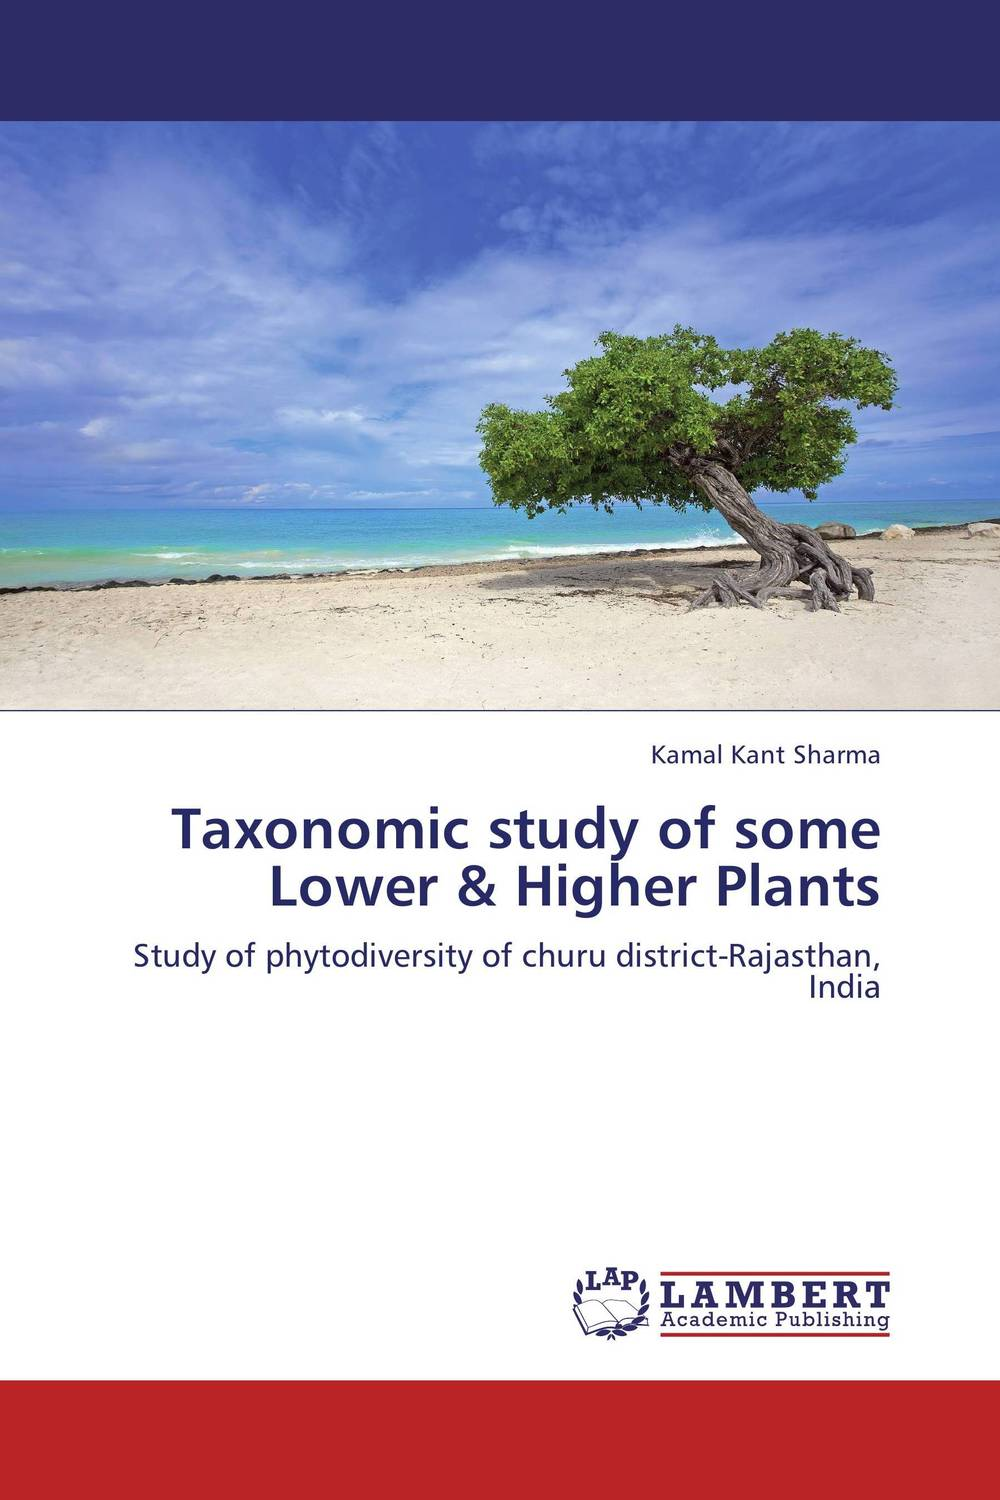 Taxonomic study of some Lower & Higher Plants plant taxonomy and systematics